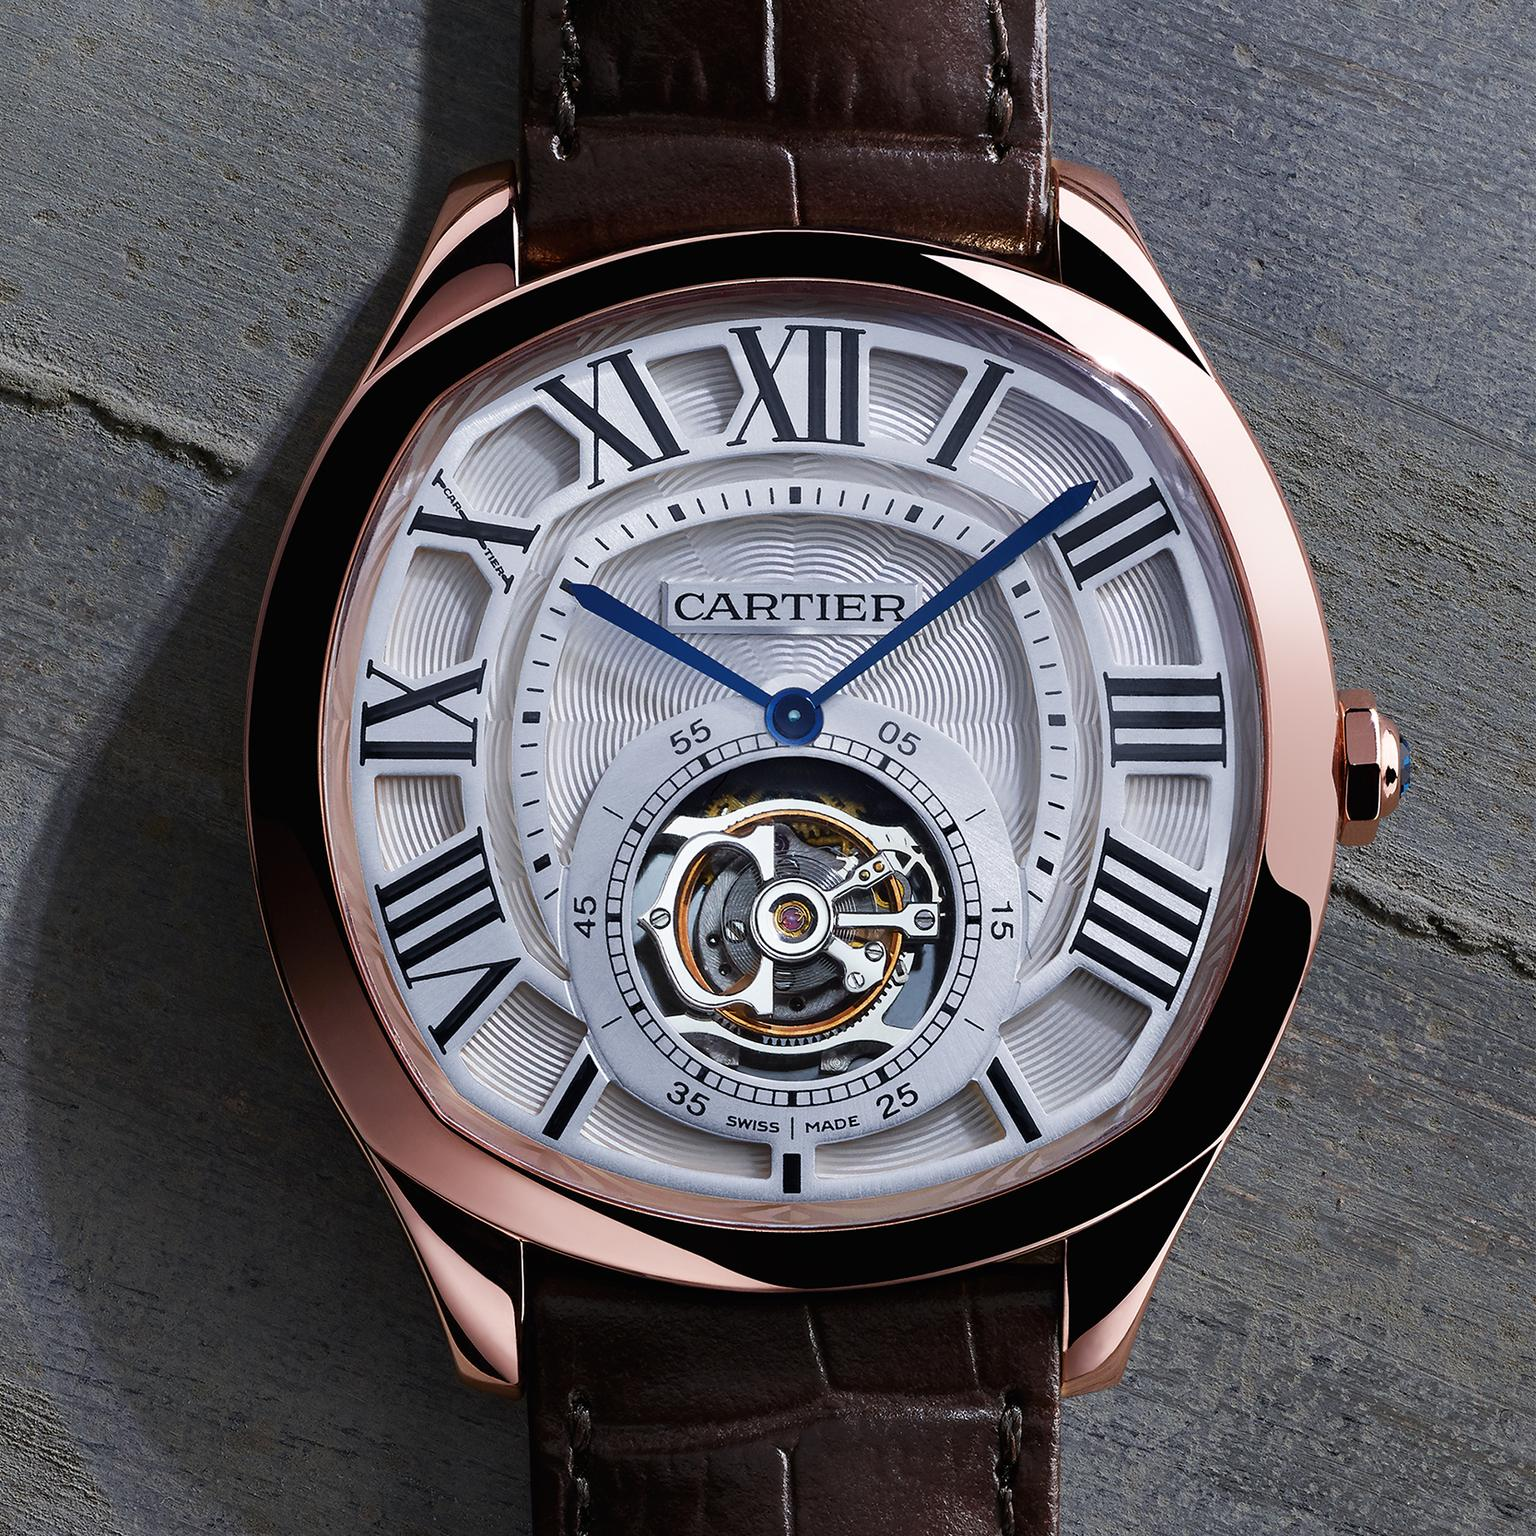 Cartier Drive watch in rose gold